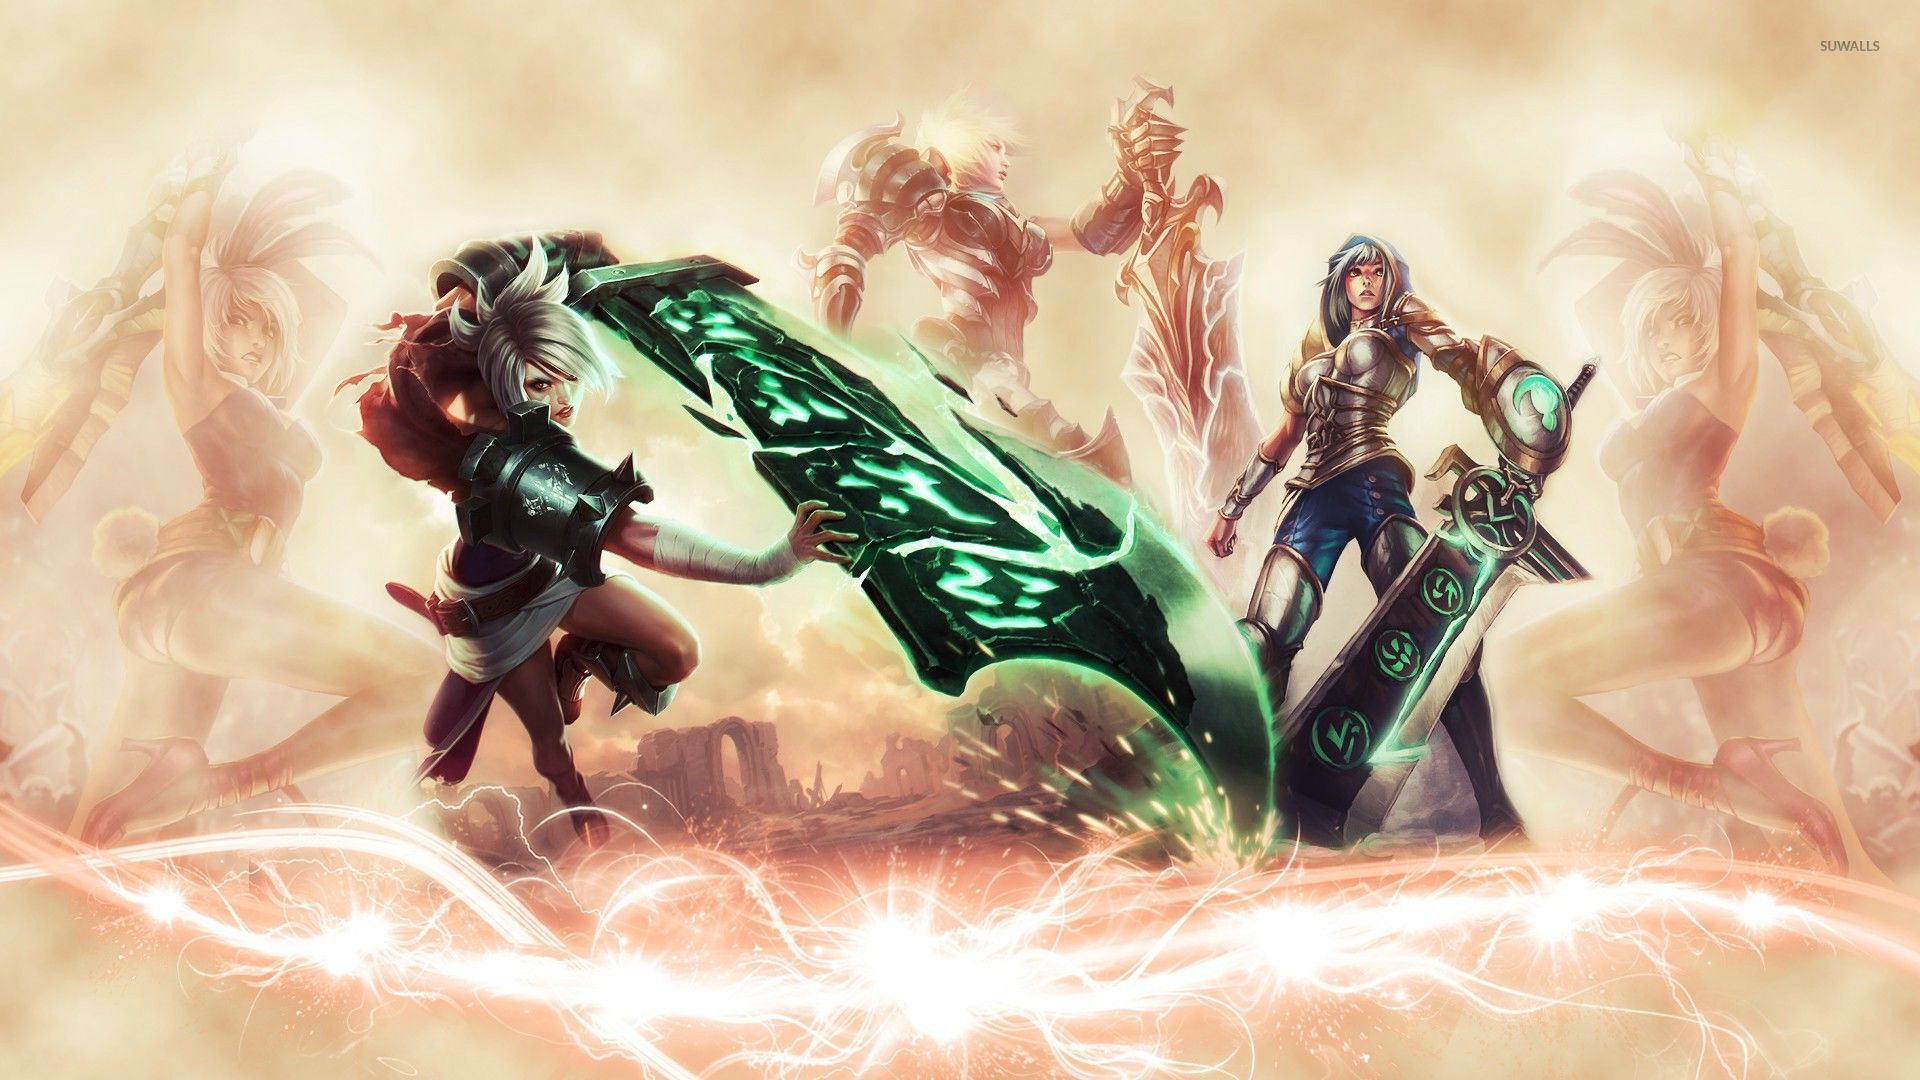 Free Download Riven League Of Legends Wallpaper Game Wallpapers